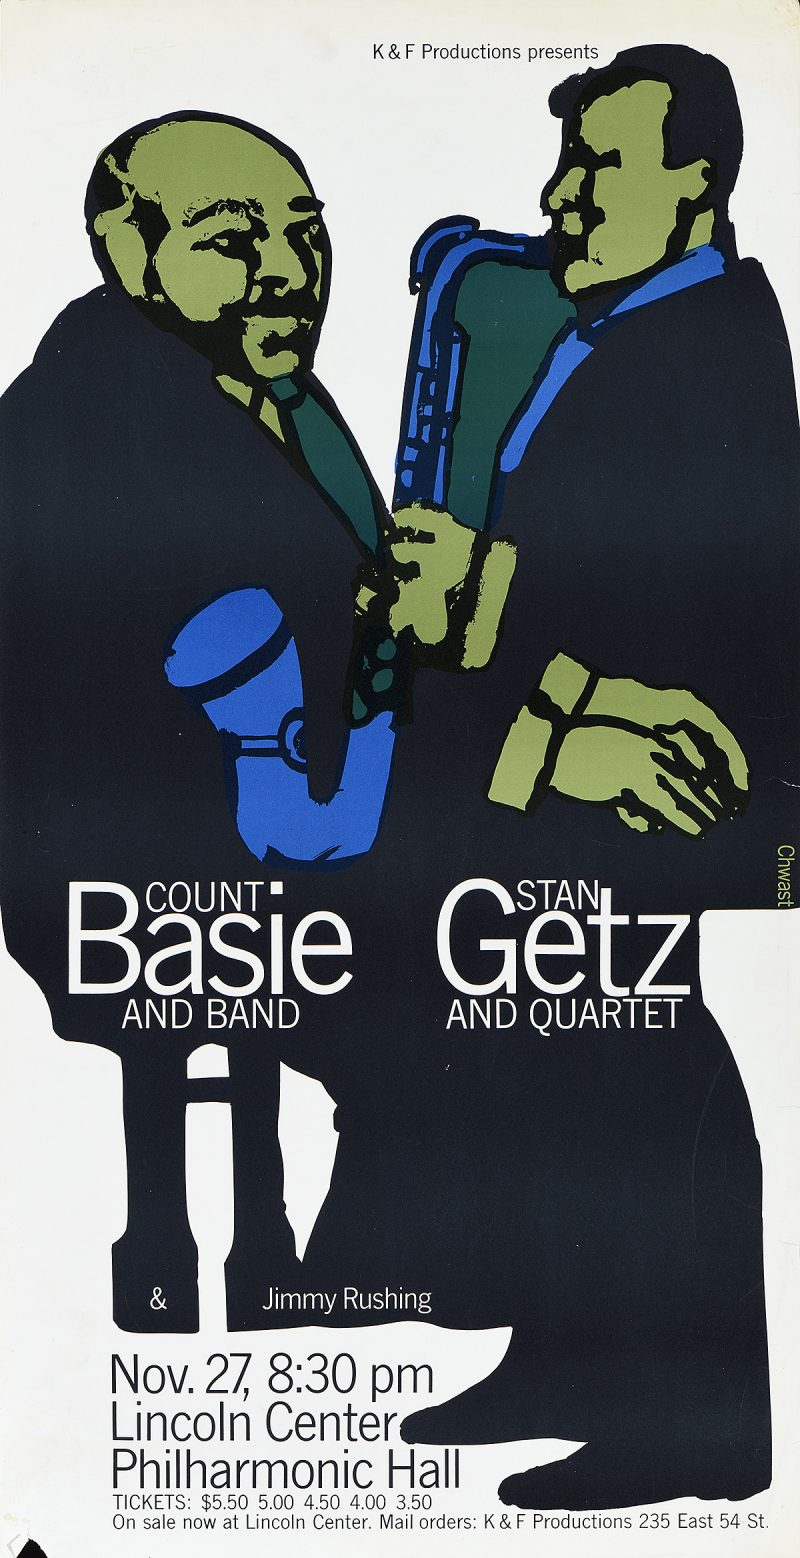 photo offset poster of two green jazz musicians facing each other wearing black suits